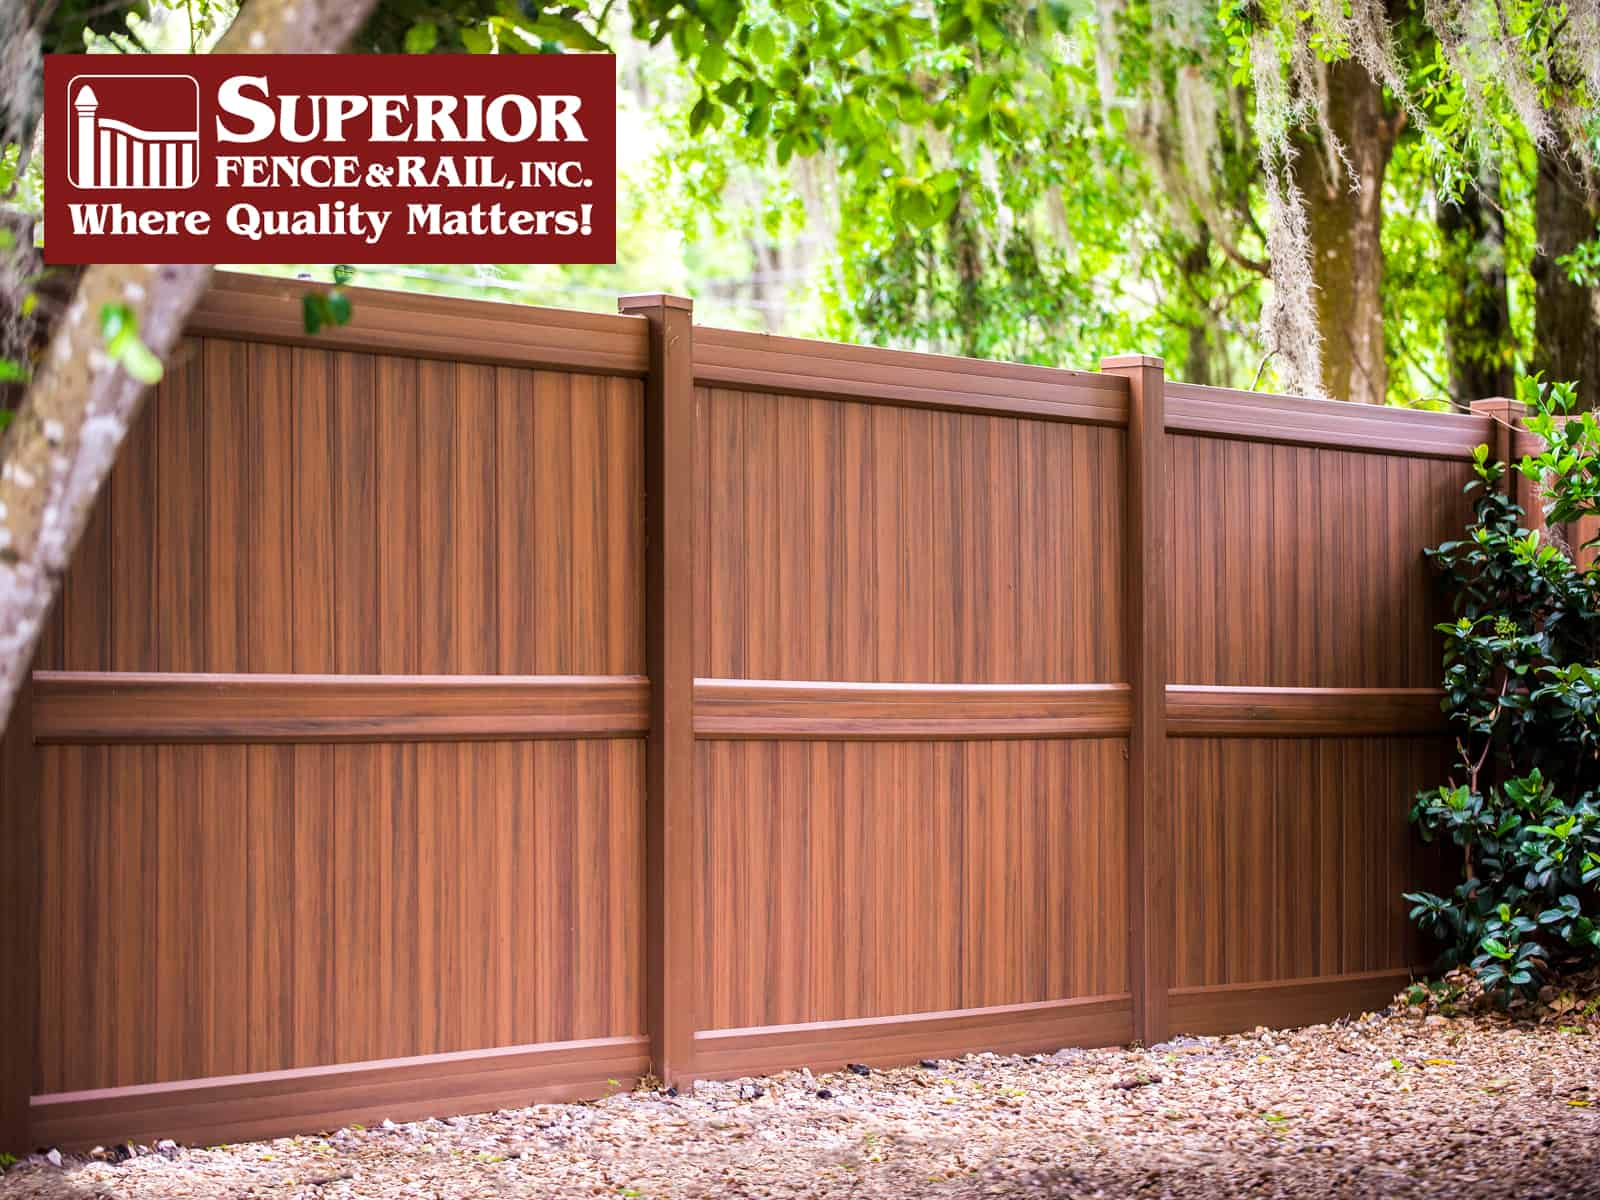 Phoenixville Fence Company Contractor